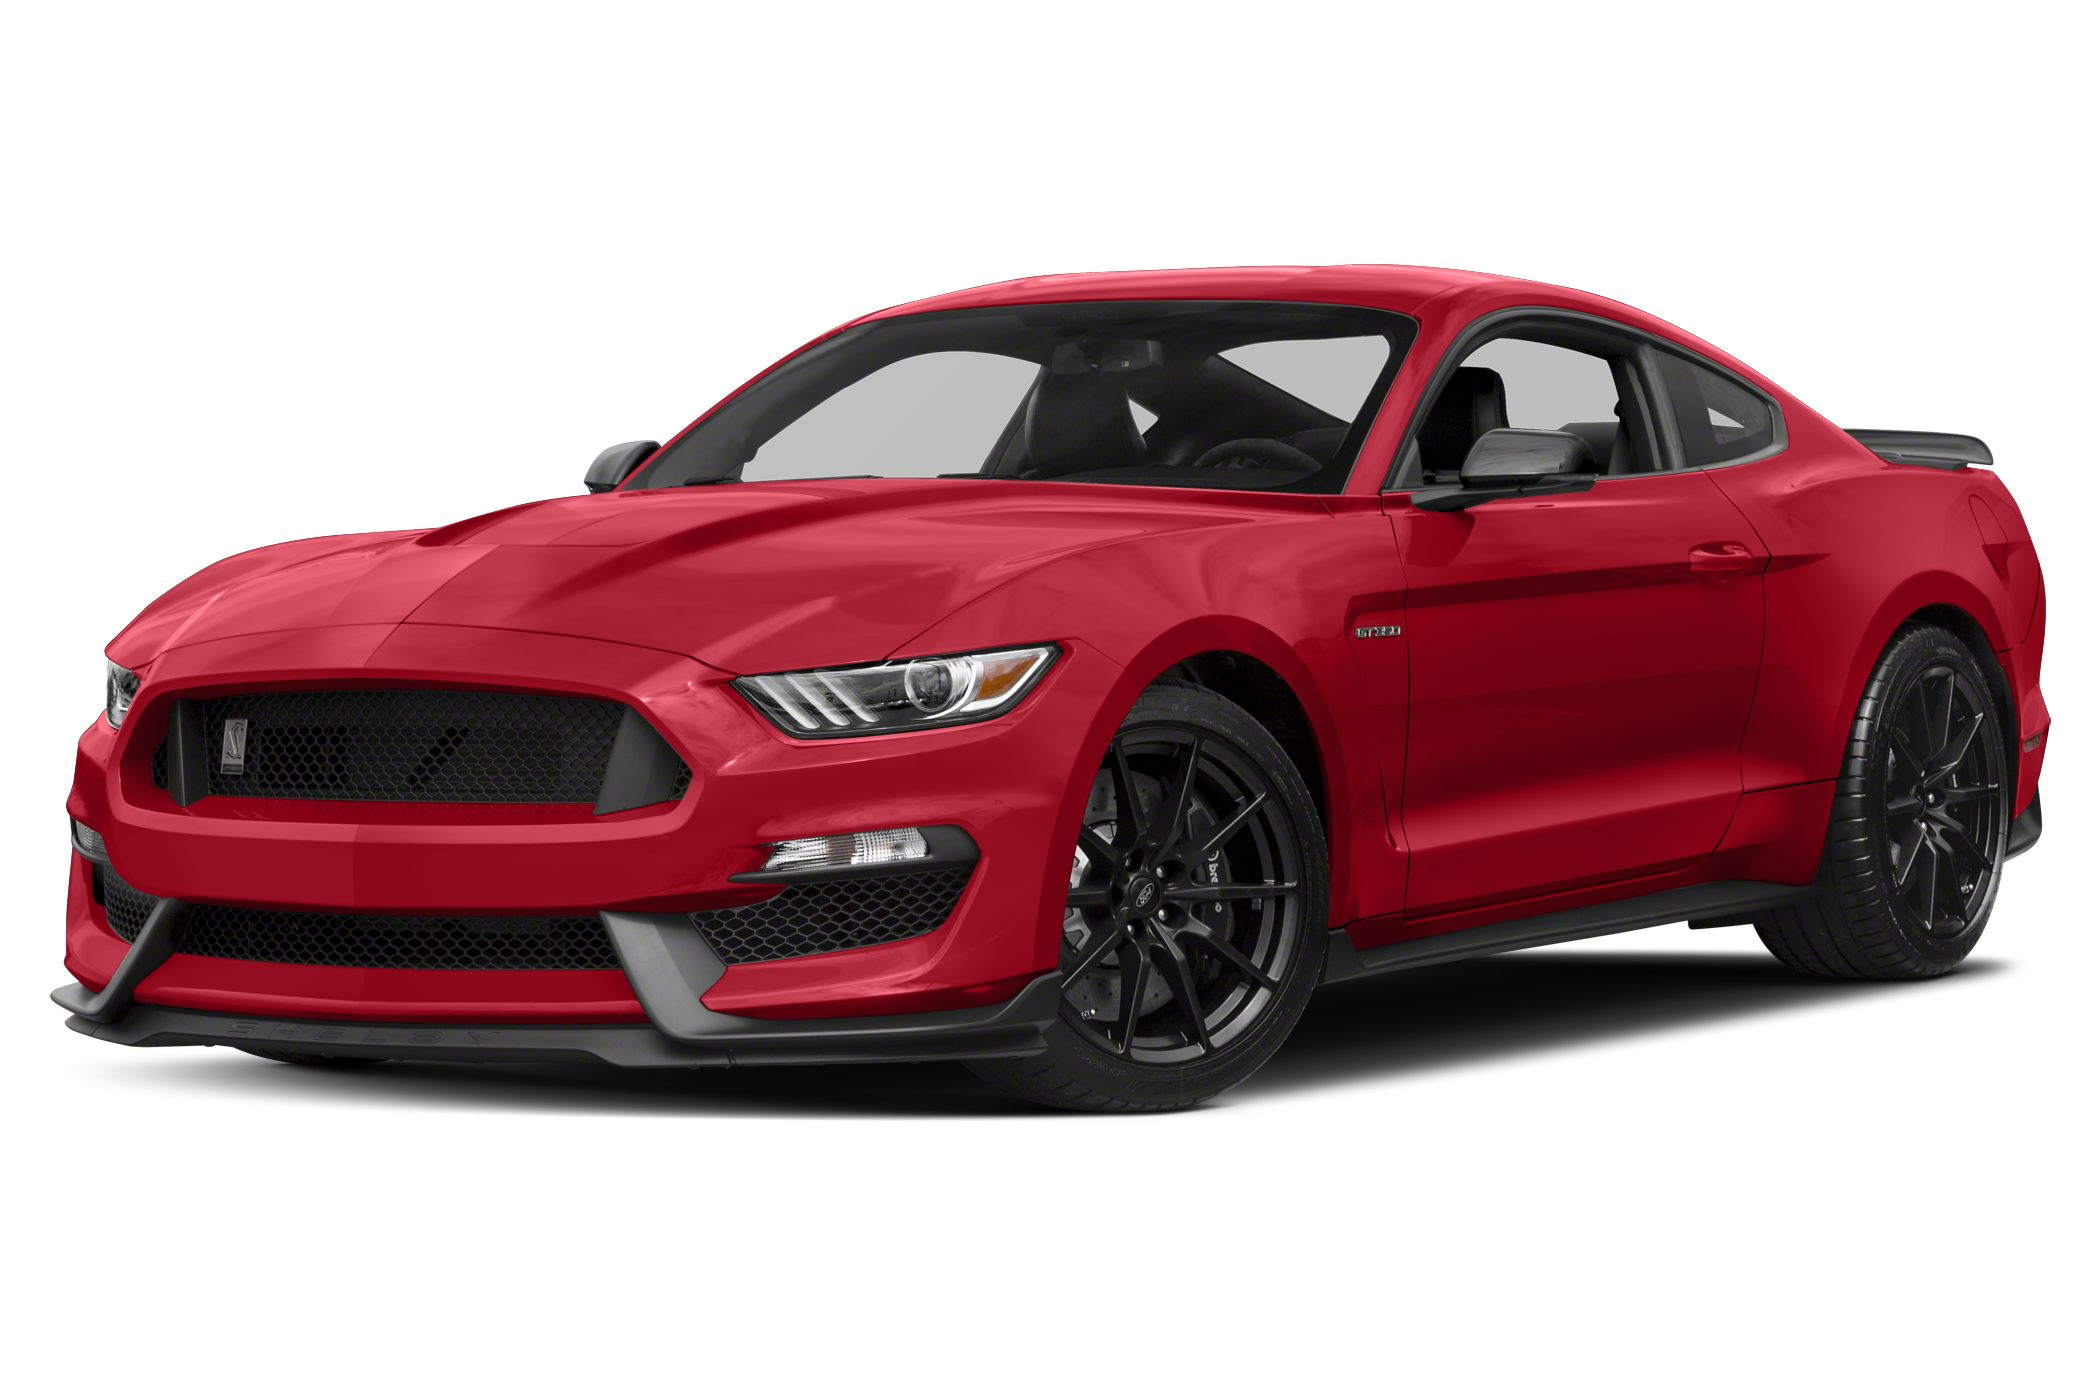 2017 ford shelby gt350 base for sale vin 1fa6p8jz7h